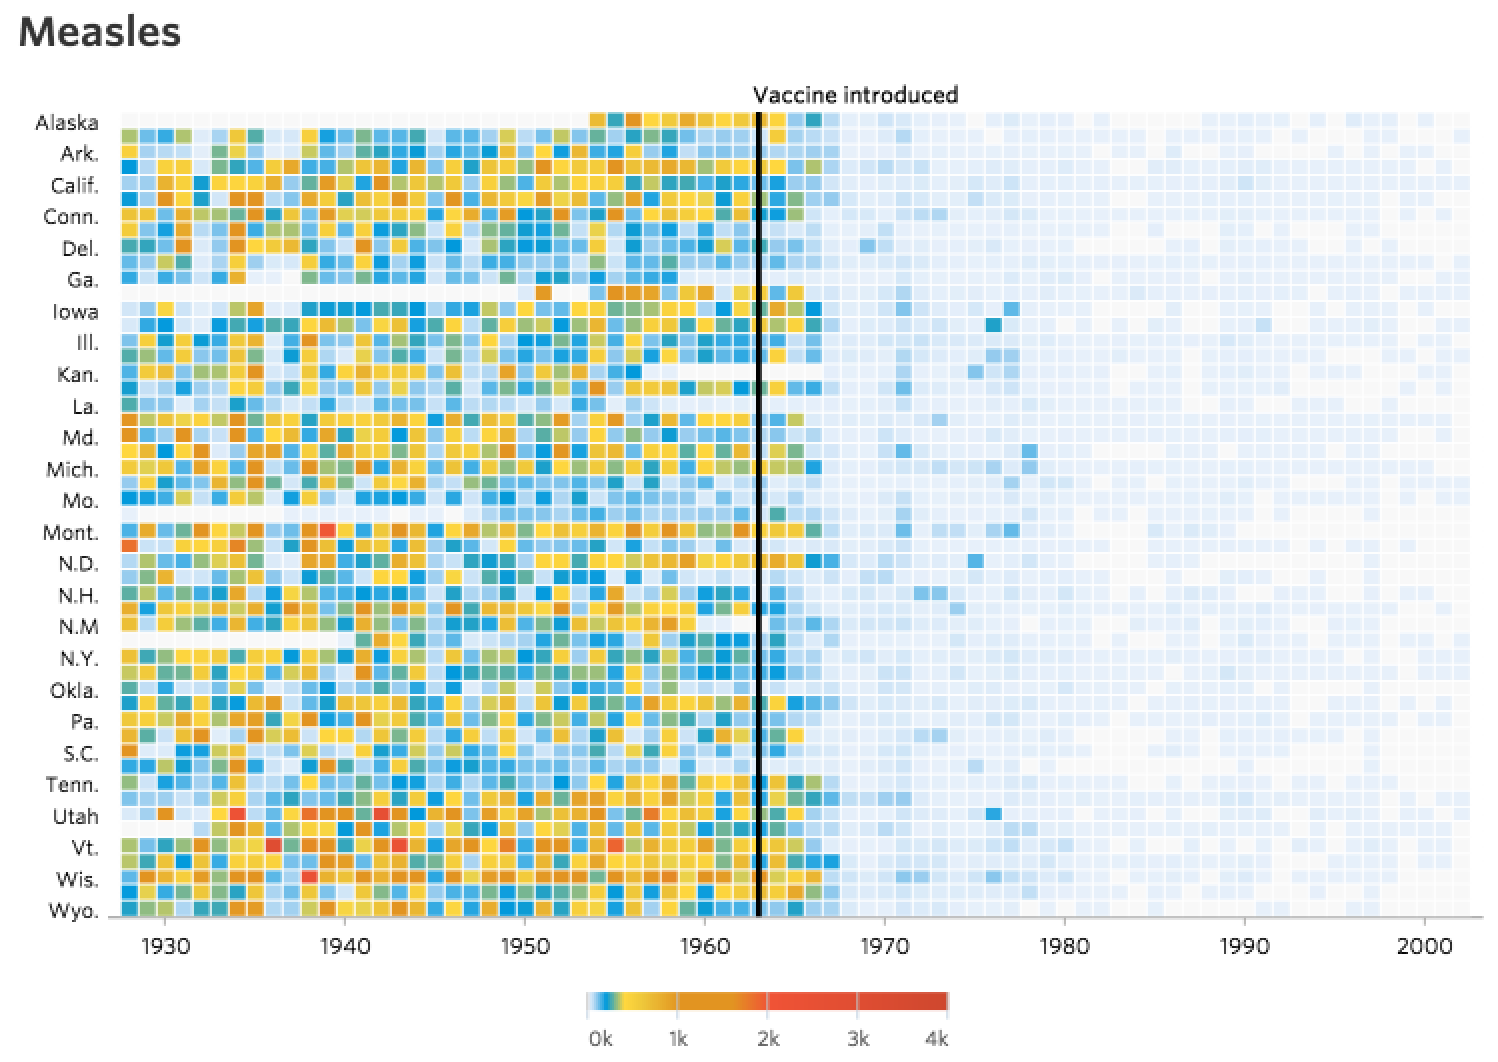 Two great visualizations by The Wall Street Journal